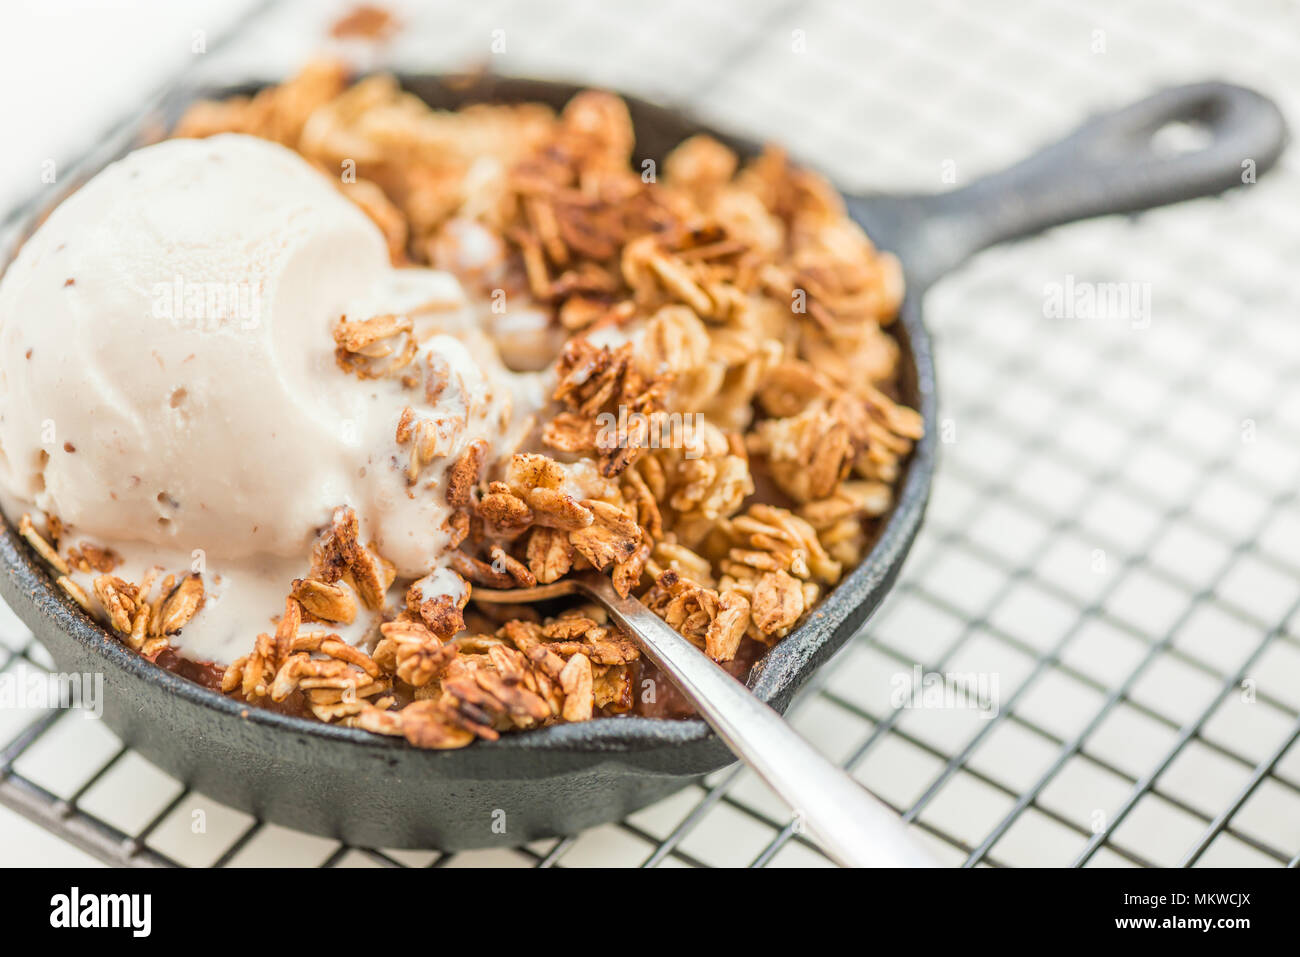 Homemade cooked rhubarb and apple crumble with oatmeal and vanilla ice cream in the iron pans - Stock Image